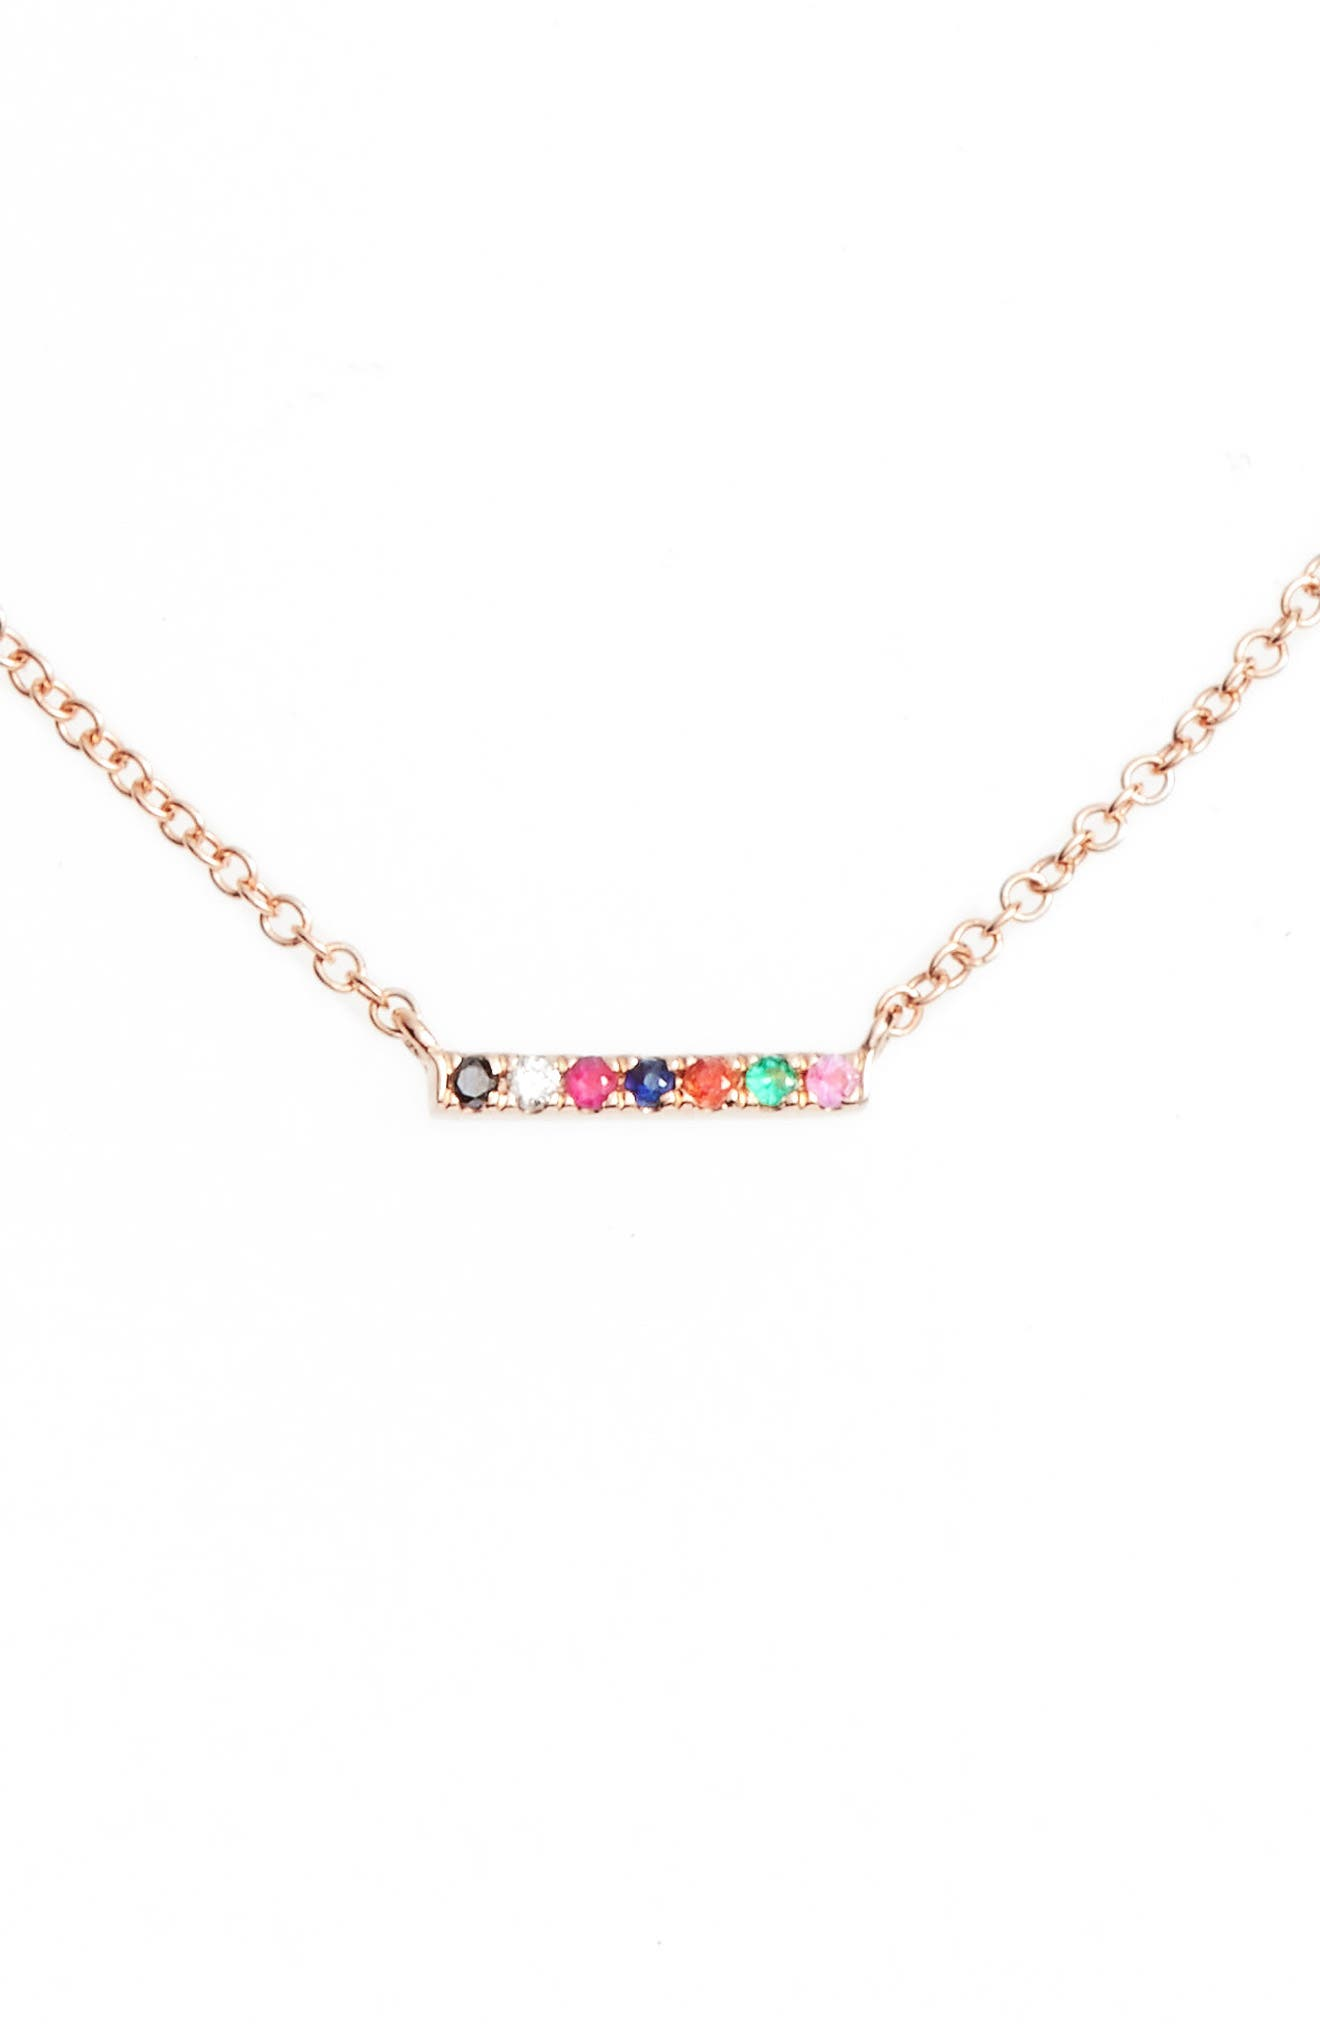 Mini Bar Rainbow Necklace,                             Main thumbnail 1, color,                             Rose Gold